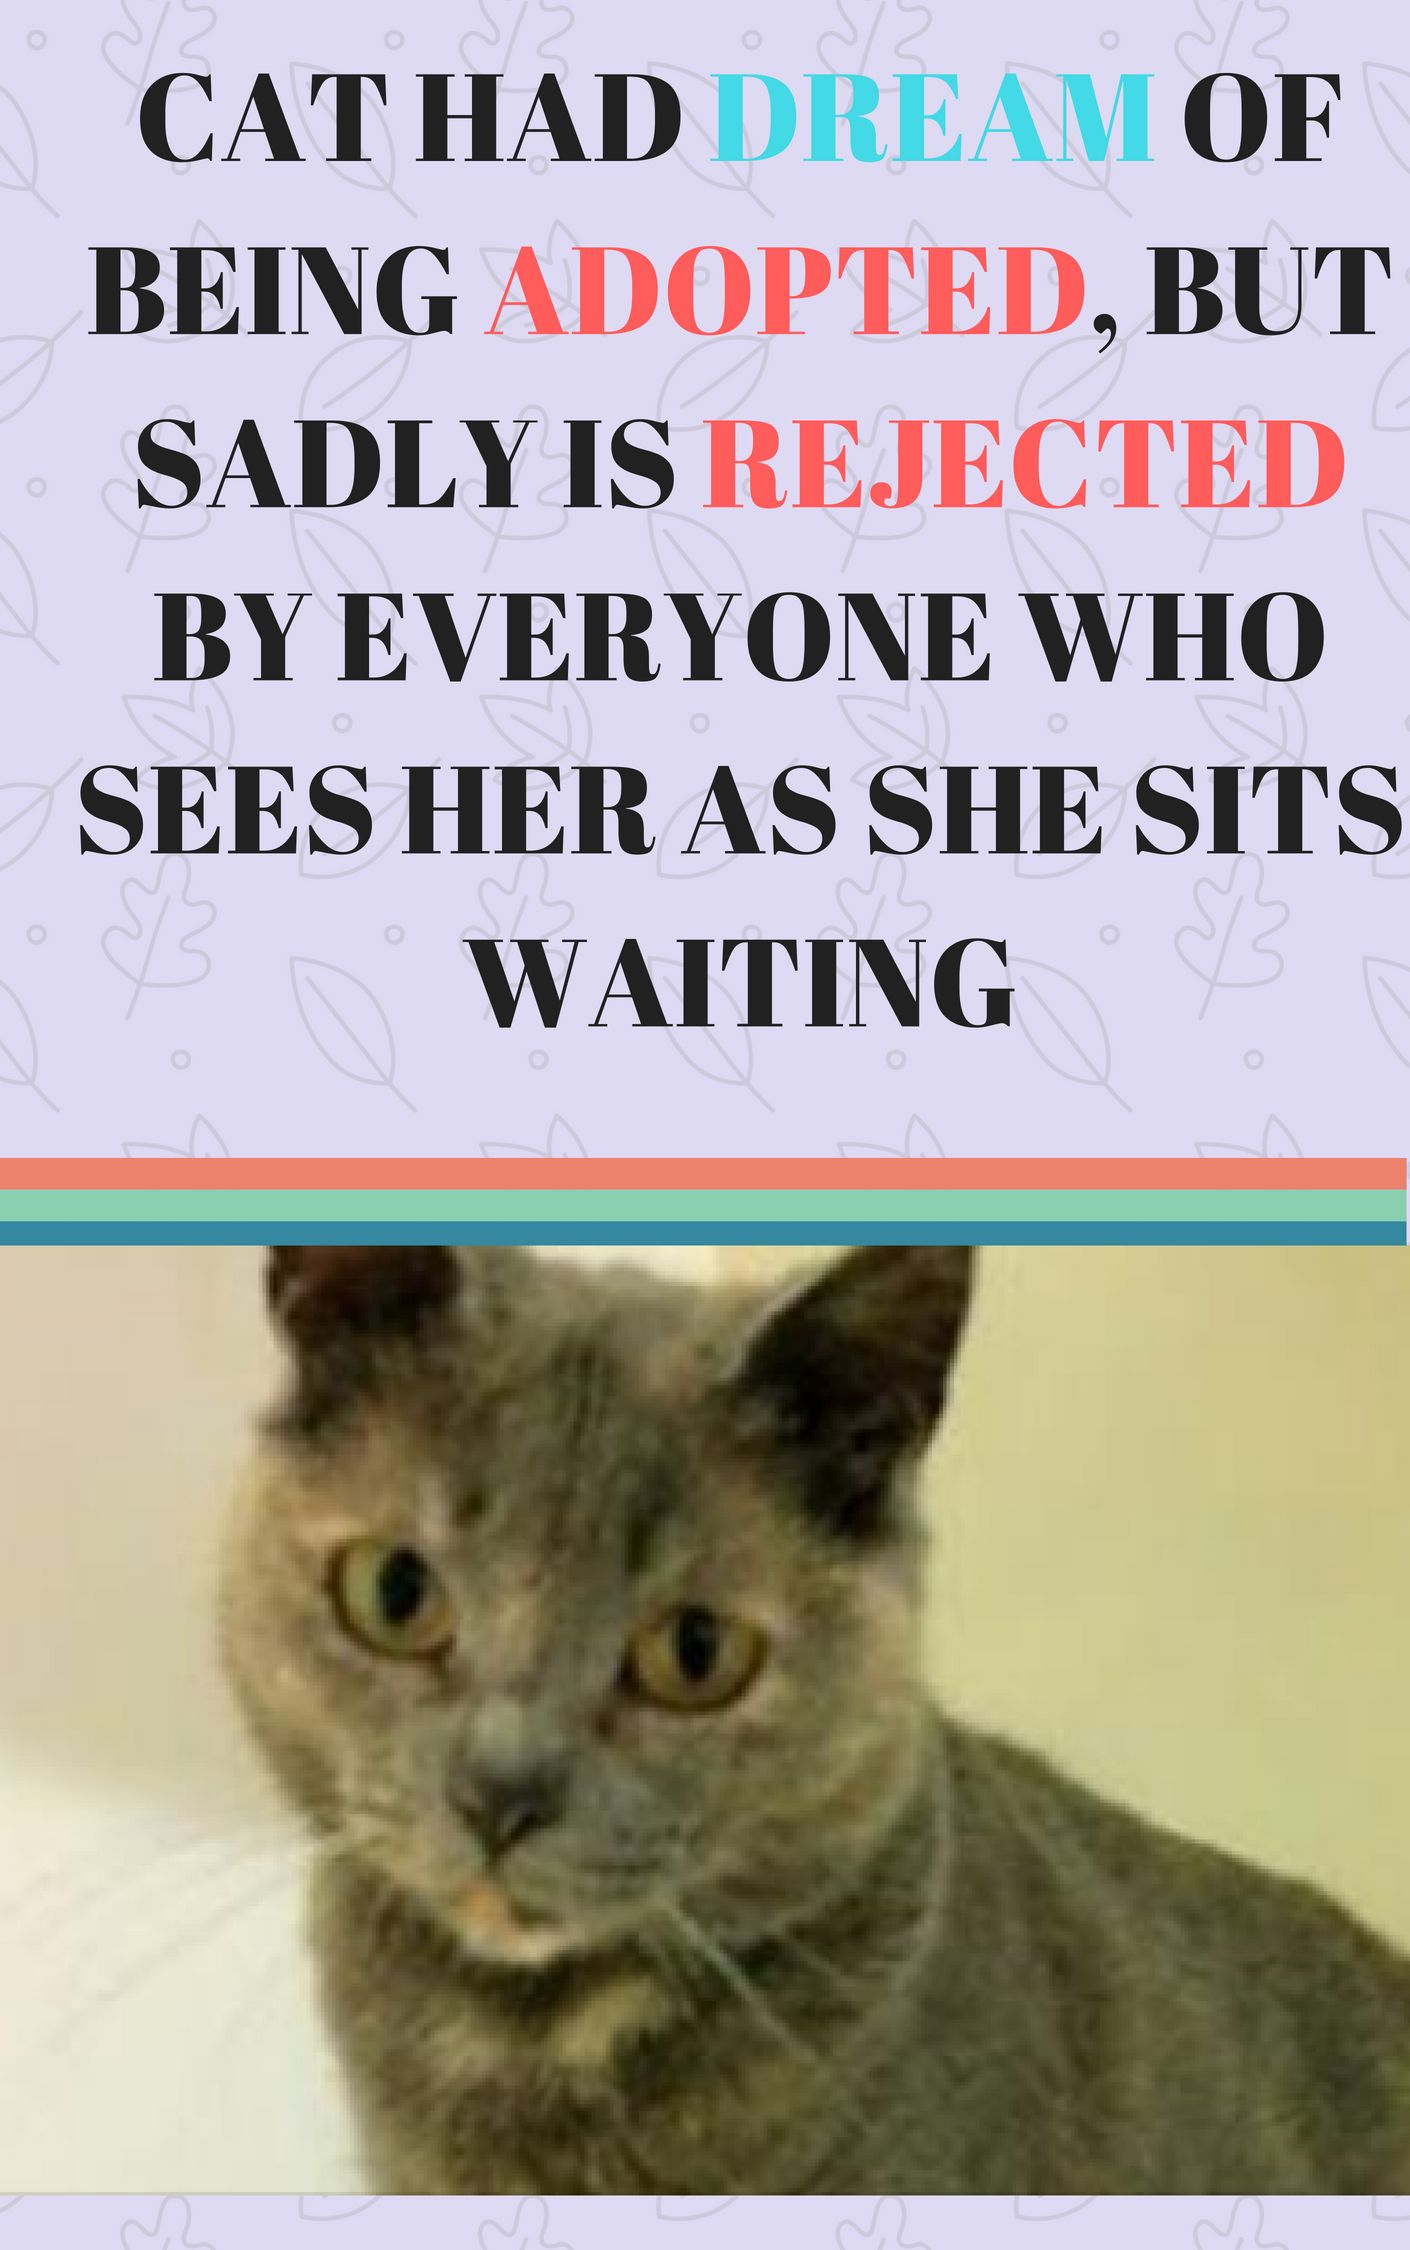 Cat Had Dream Of Being Adopted But Sadly Is Rejected By Everyone Who Sees Her As She Sits Waiting Animal Rescue Stories Cats And Kittens Cute Cats